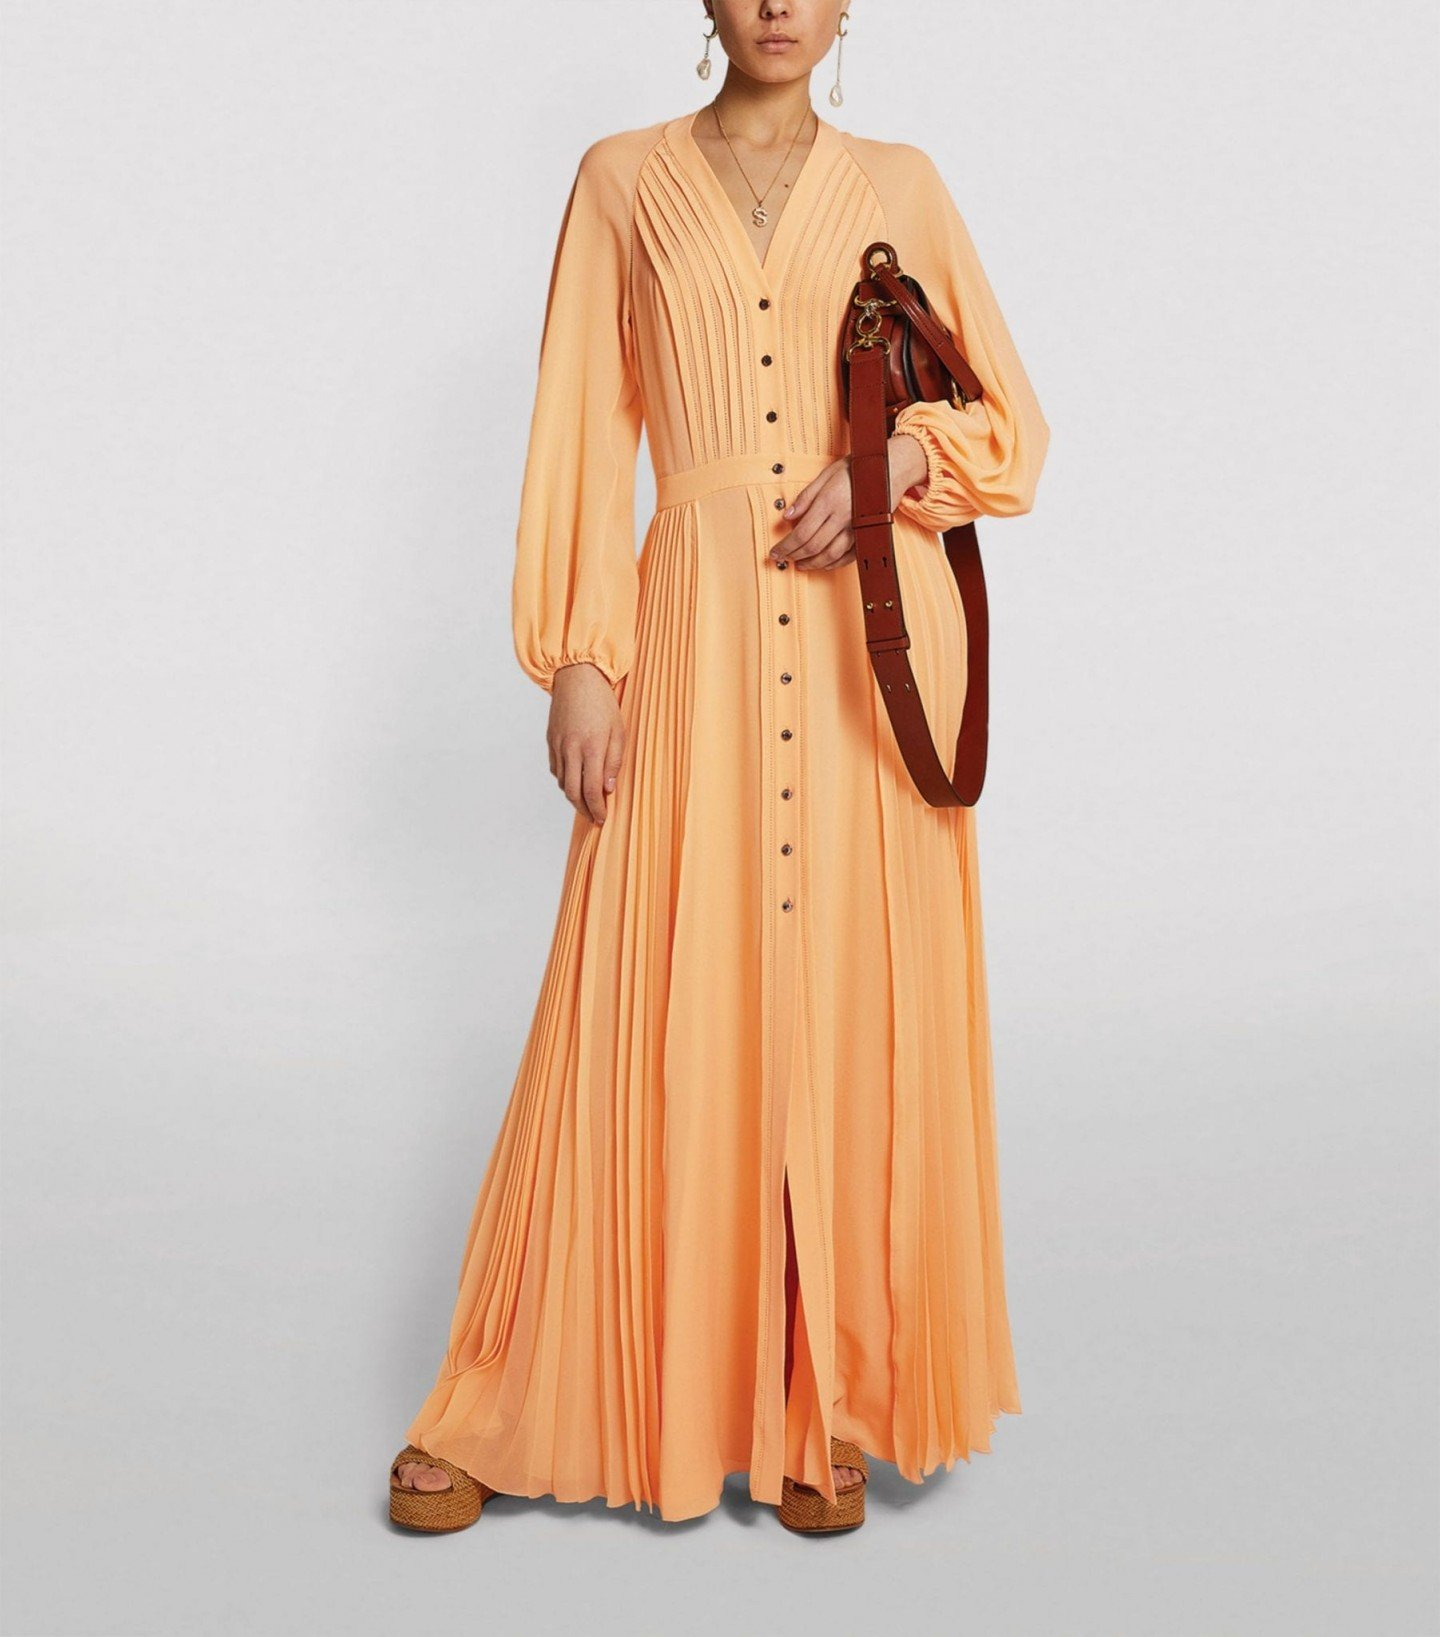 CHLOÉ Silk Pleated Dress